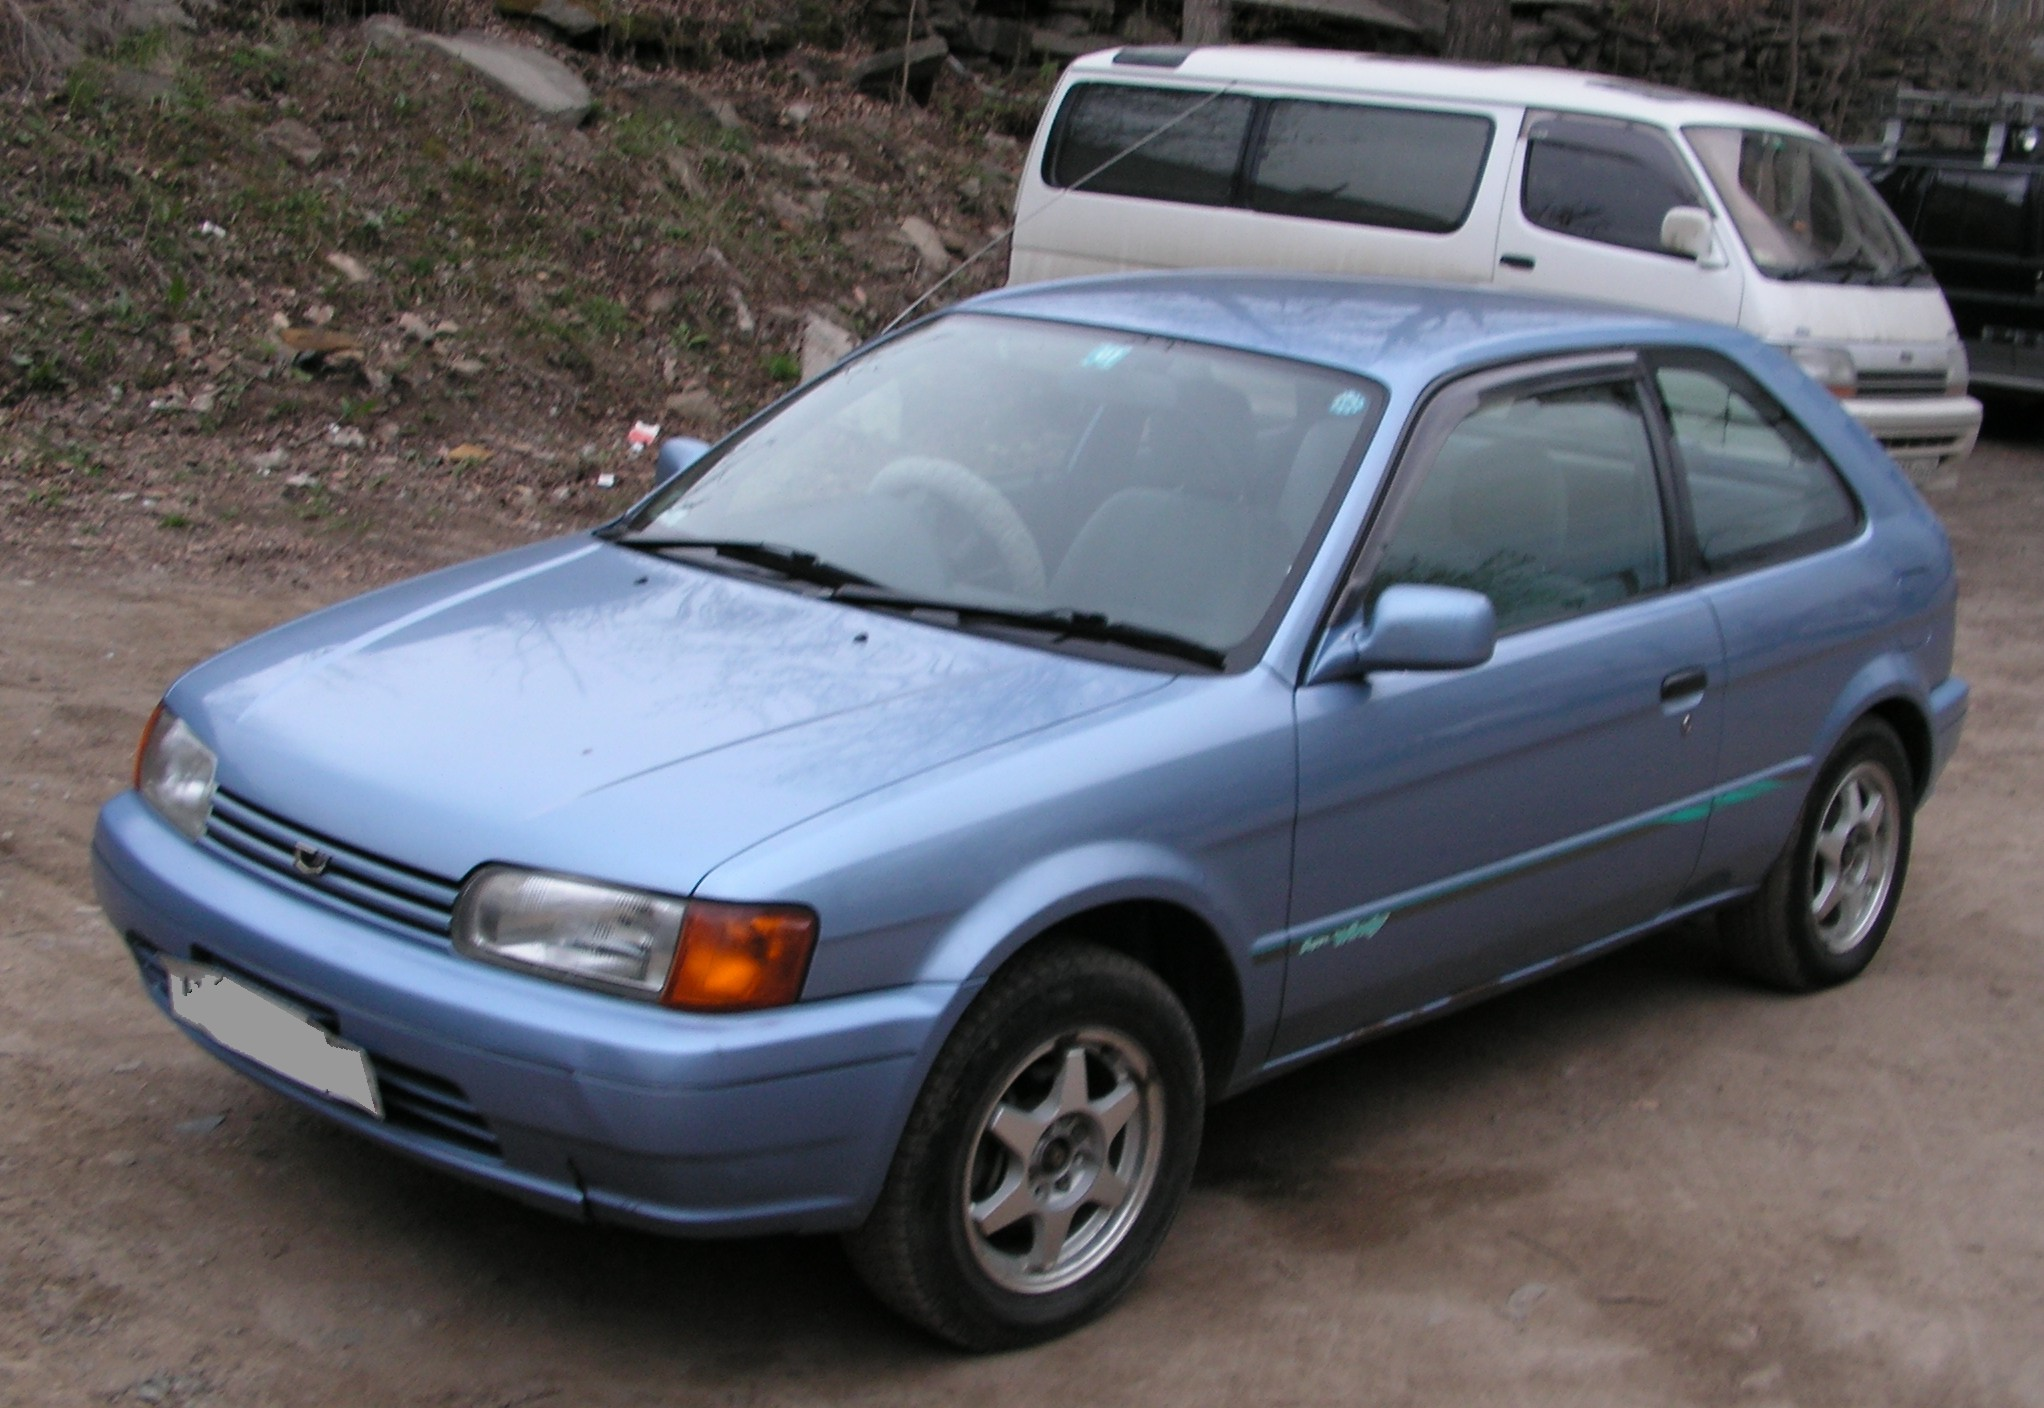 Toyota Corolla 1.5 1996 photo - 10